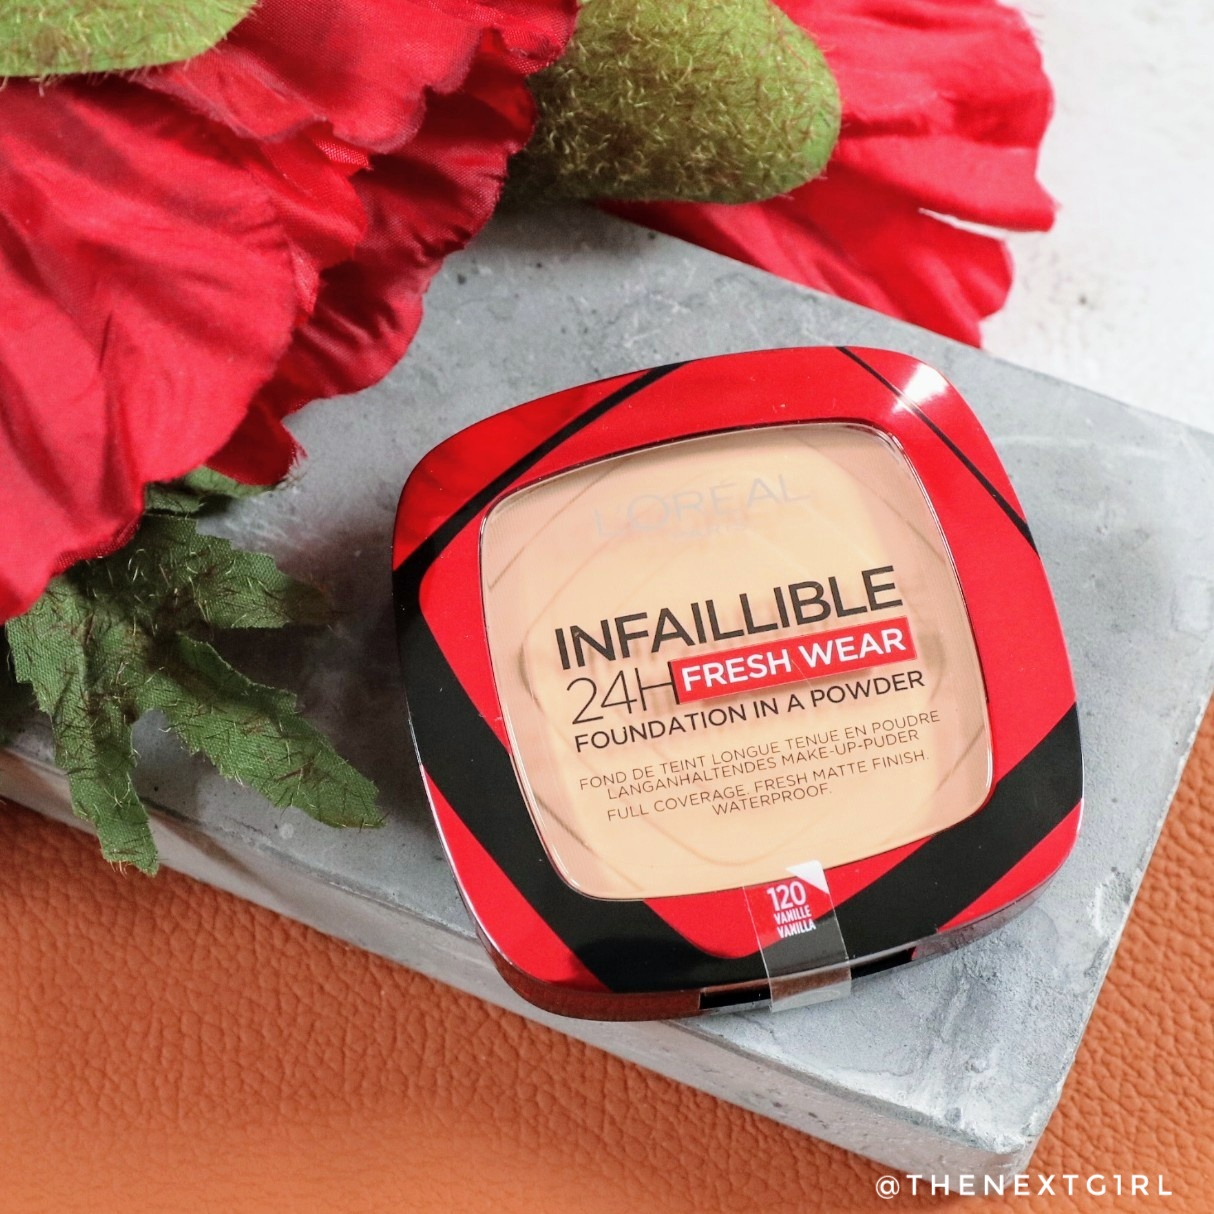 Review: L'Oreal Infaillible powder foundation